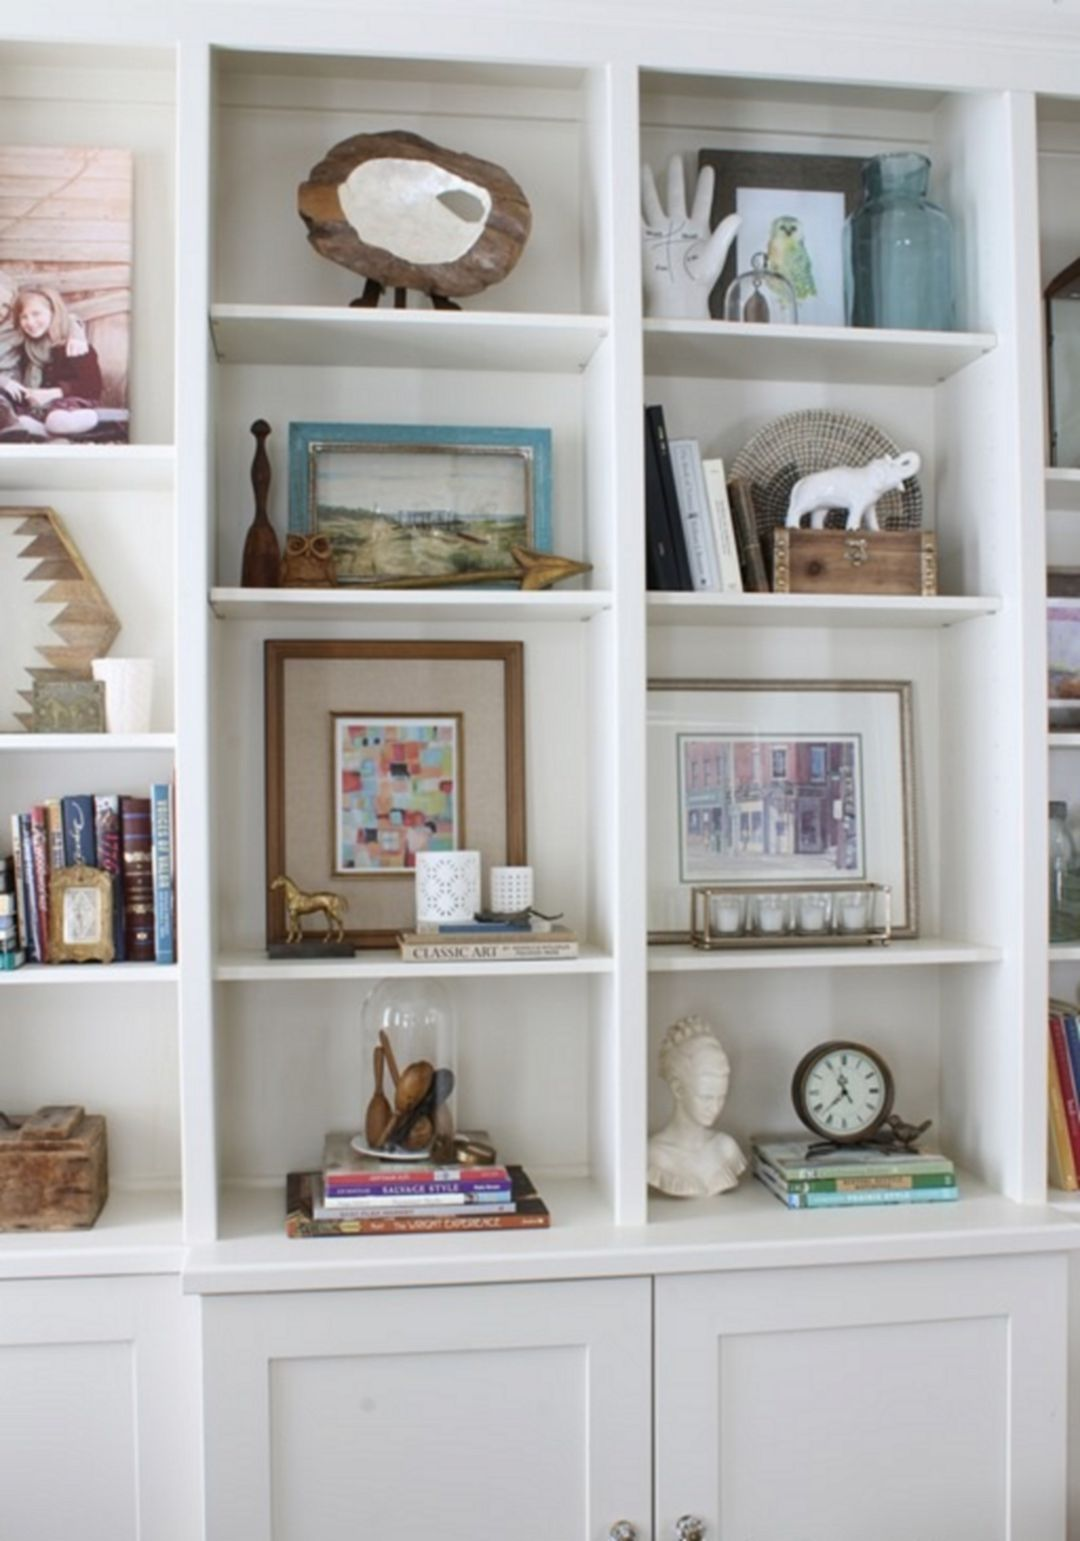 15+ Attractive Bookshelf Decorating Ideas On A Budget - Impressive